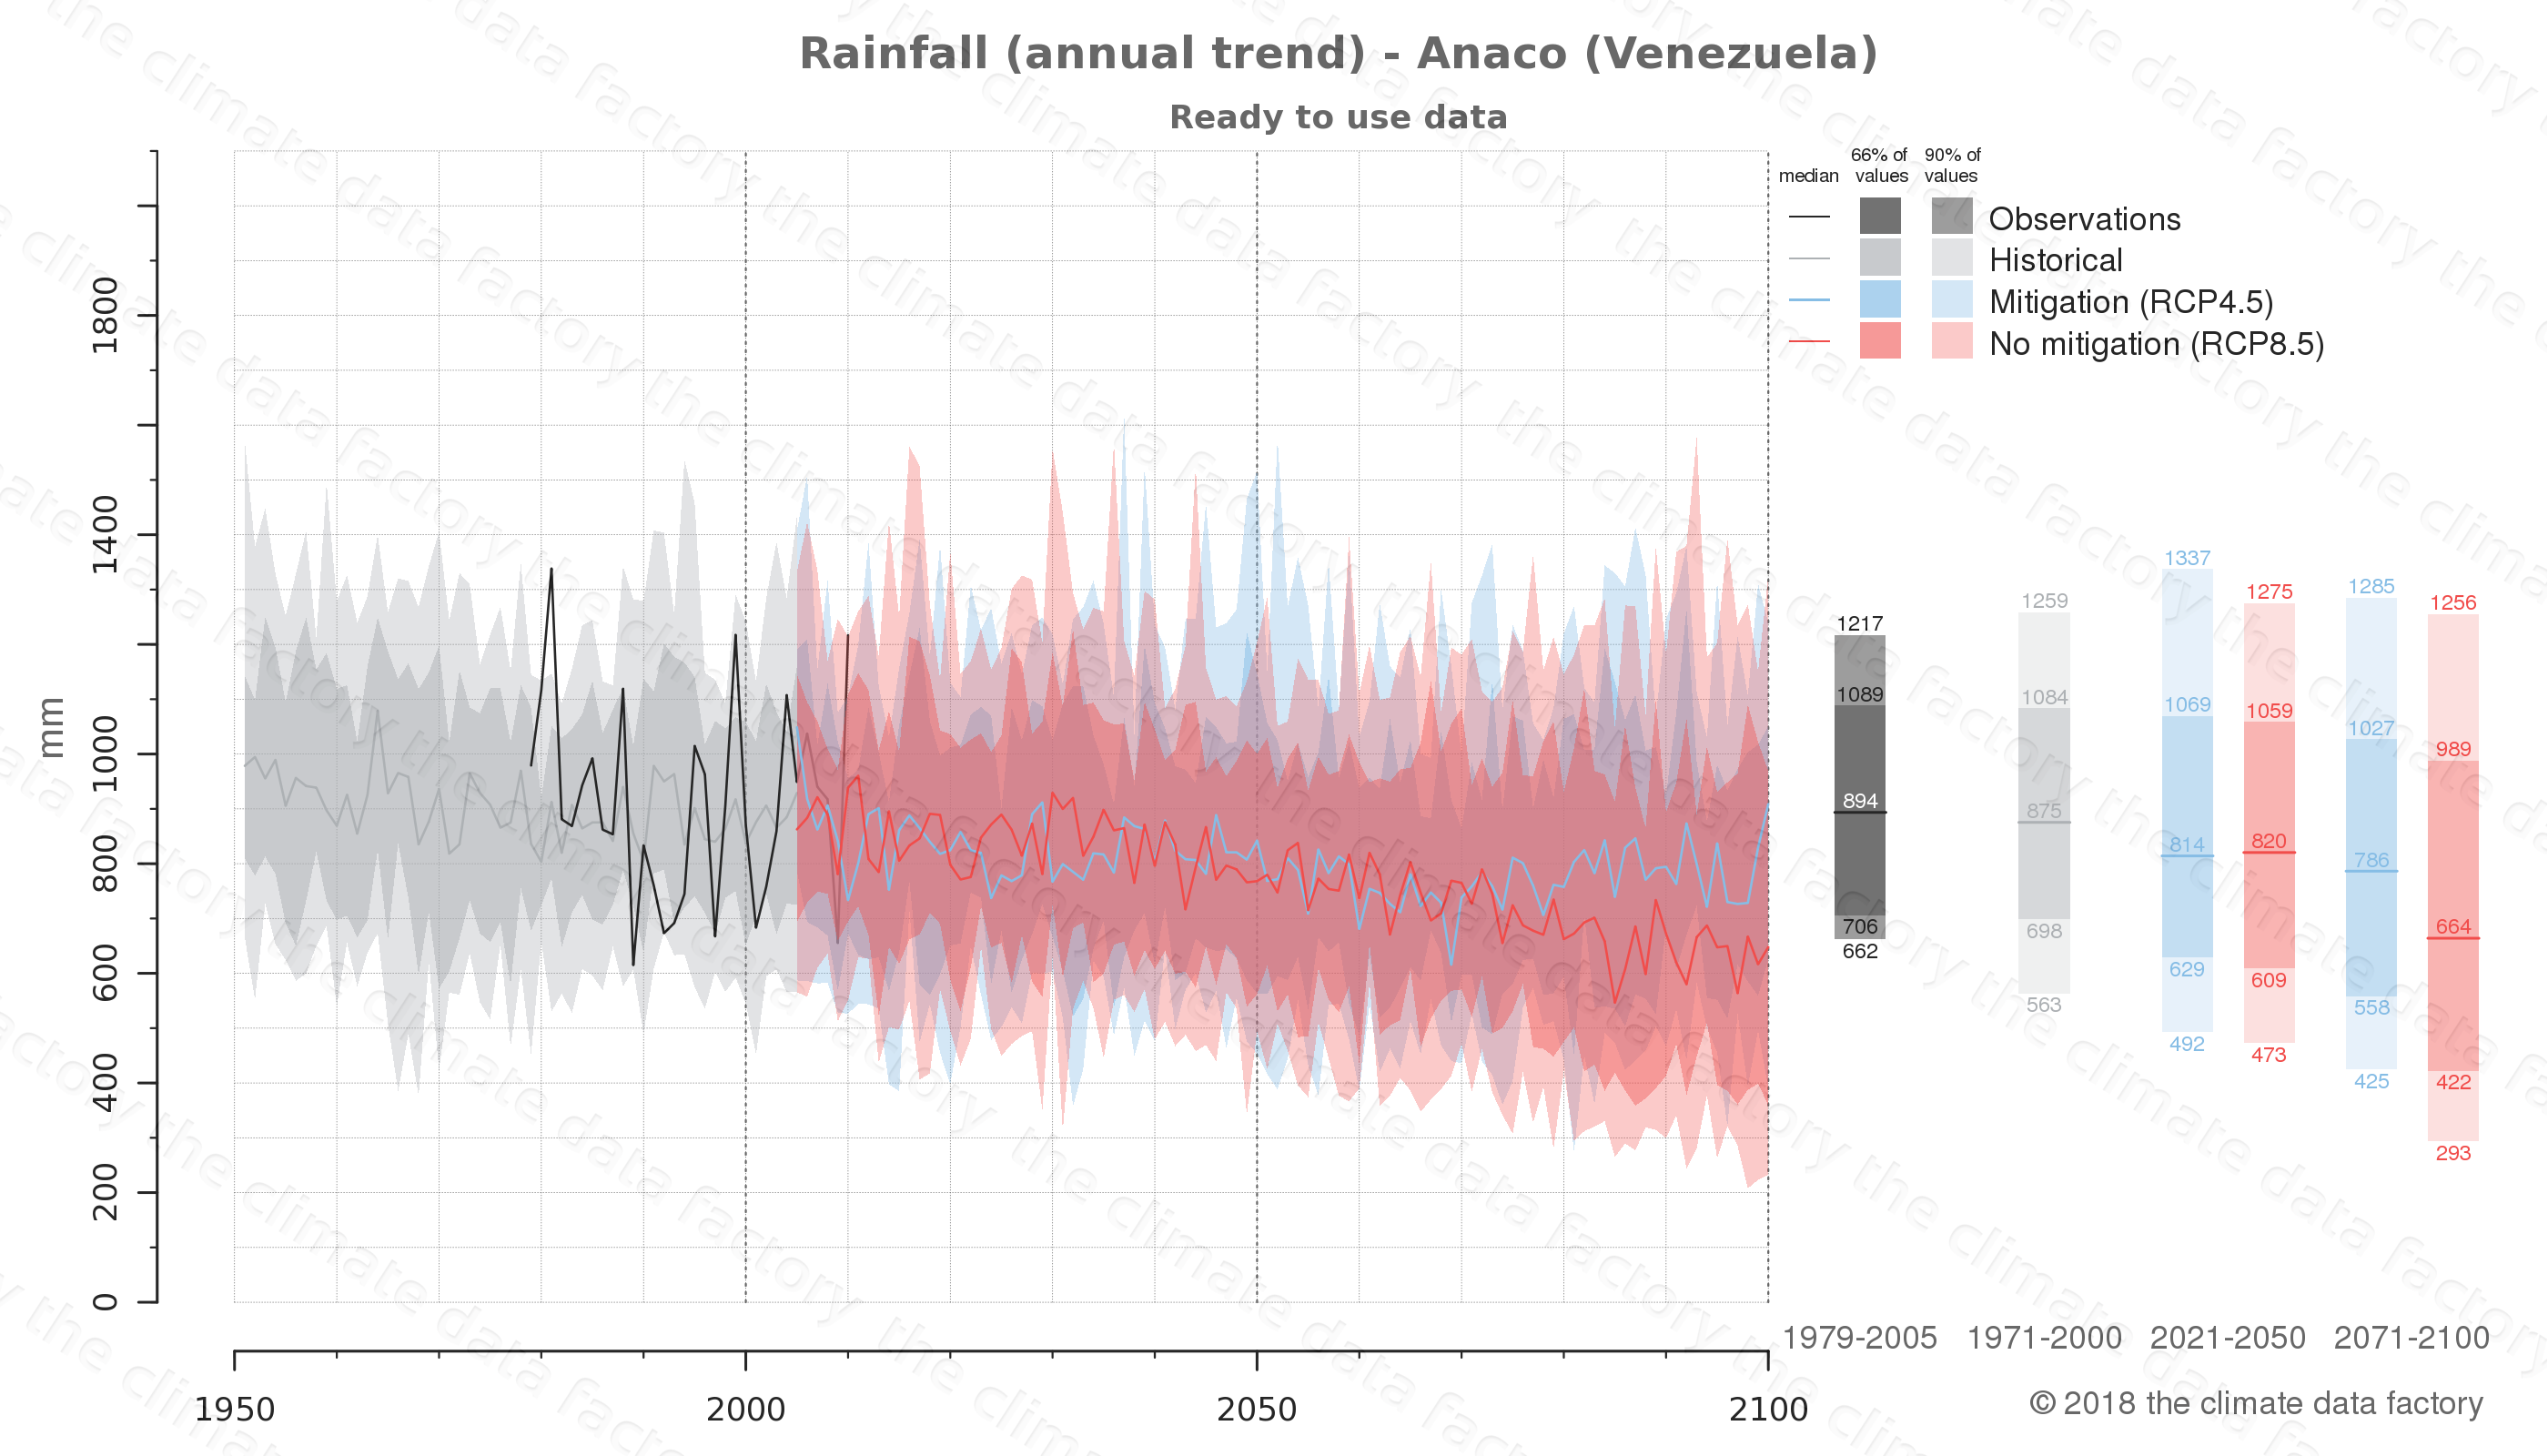 climate change data policy adaptation climate graph city data rainfall anaco venezuela